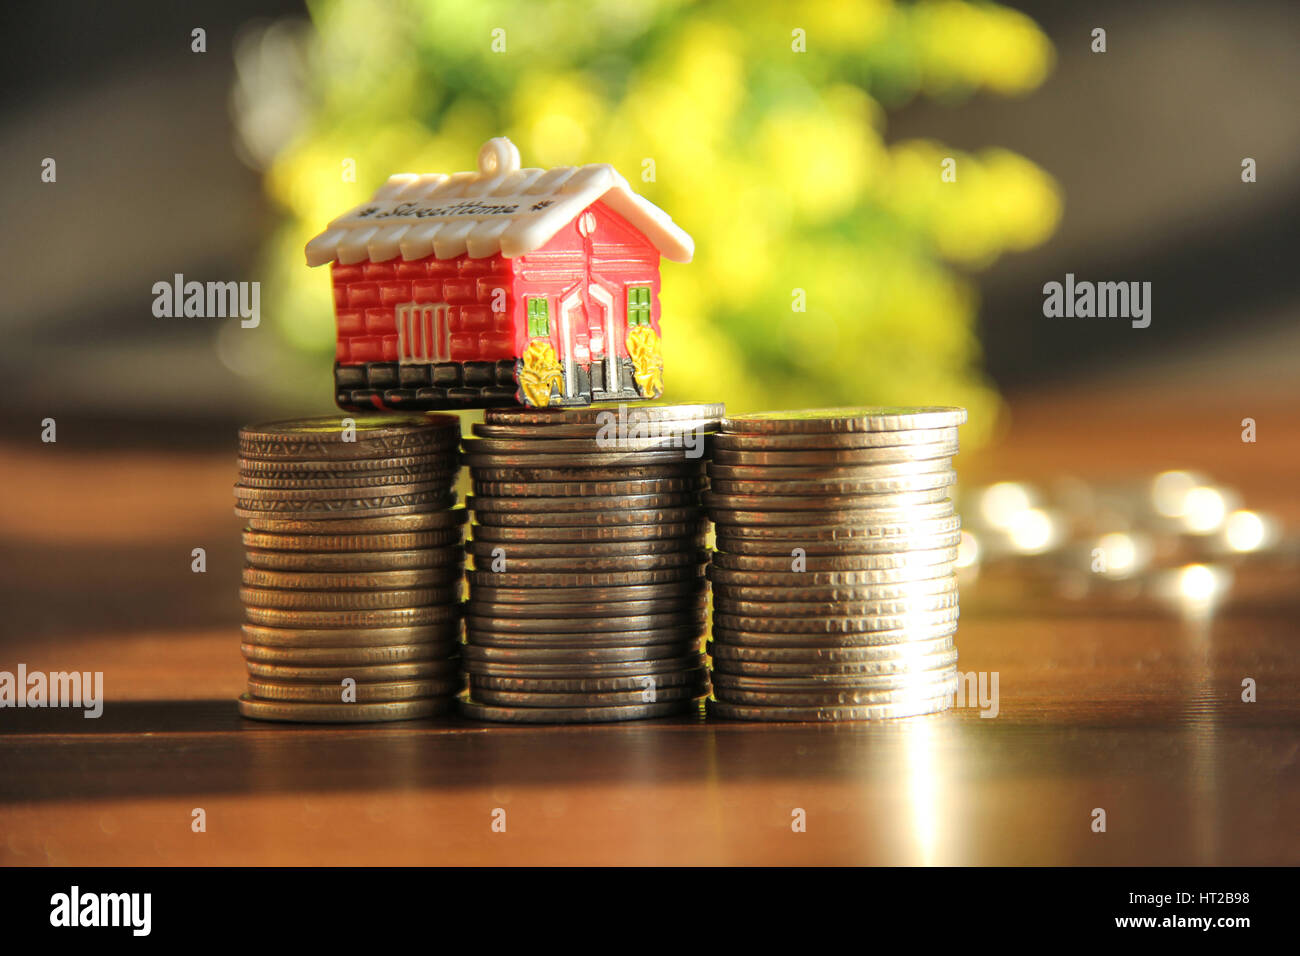 Saving money to buy house or home. Piggy bank with stack of coins - Stock Image